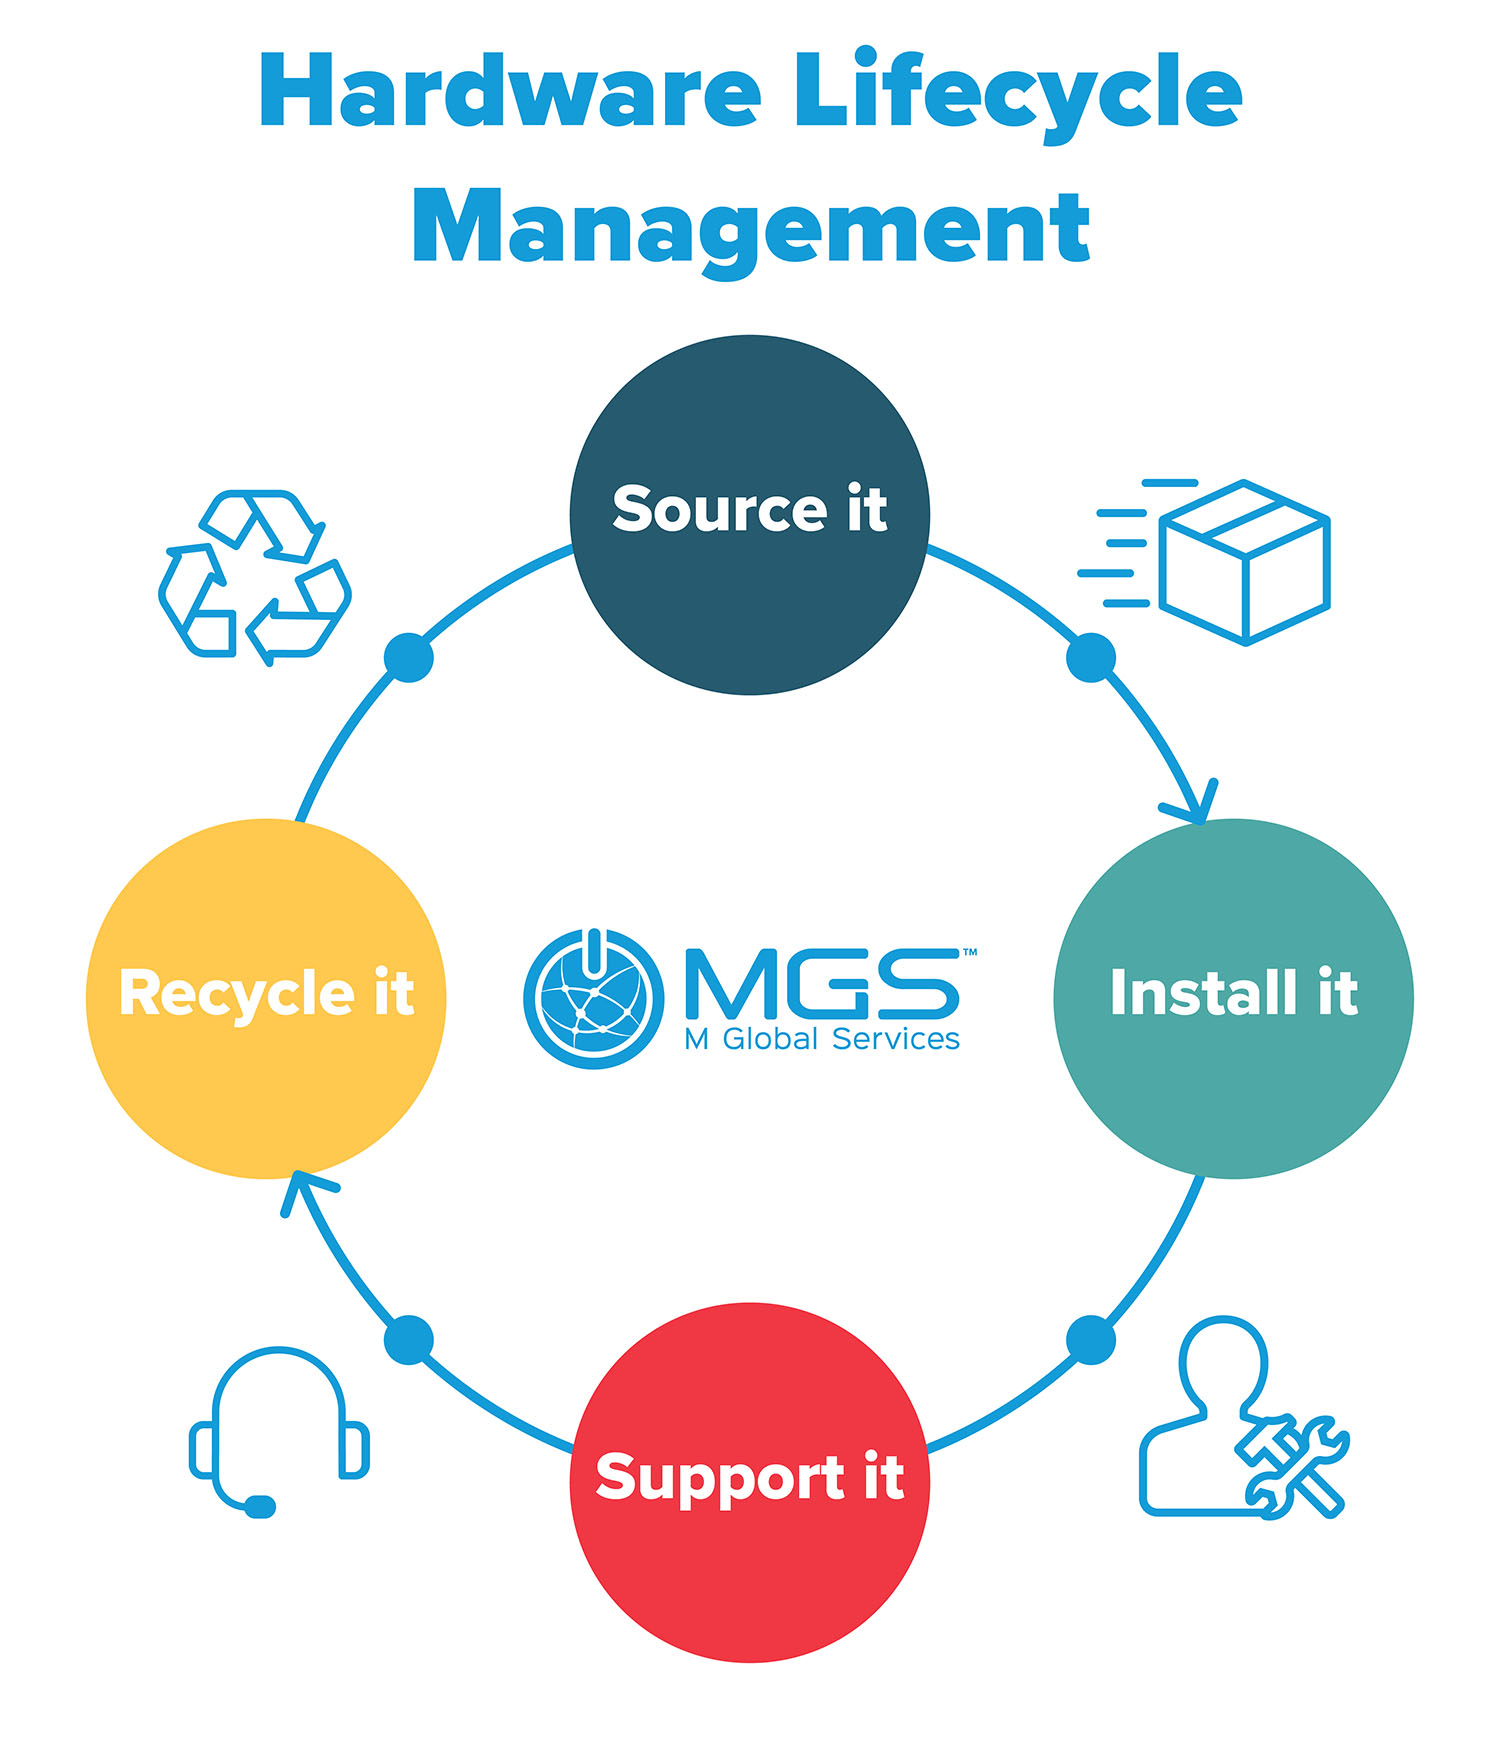 Hardware Lifecycle - Source it, Install it, Support it, Recycle it